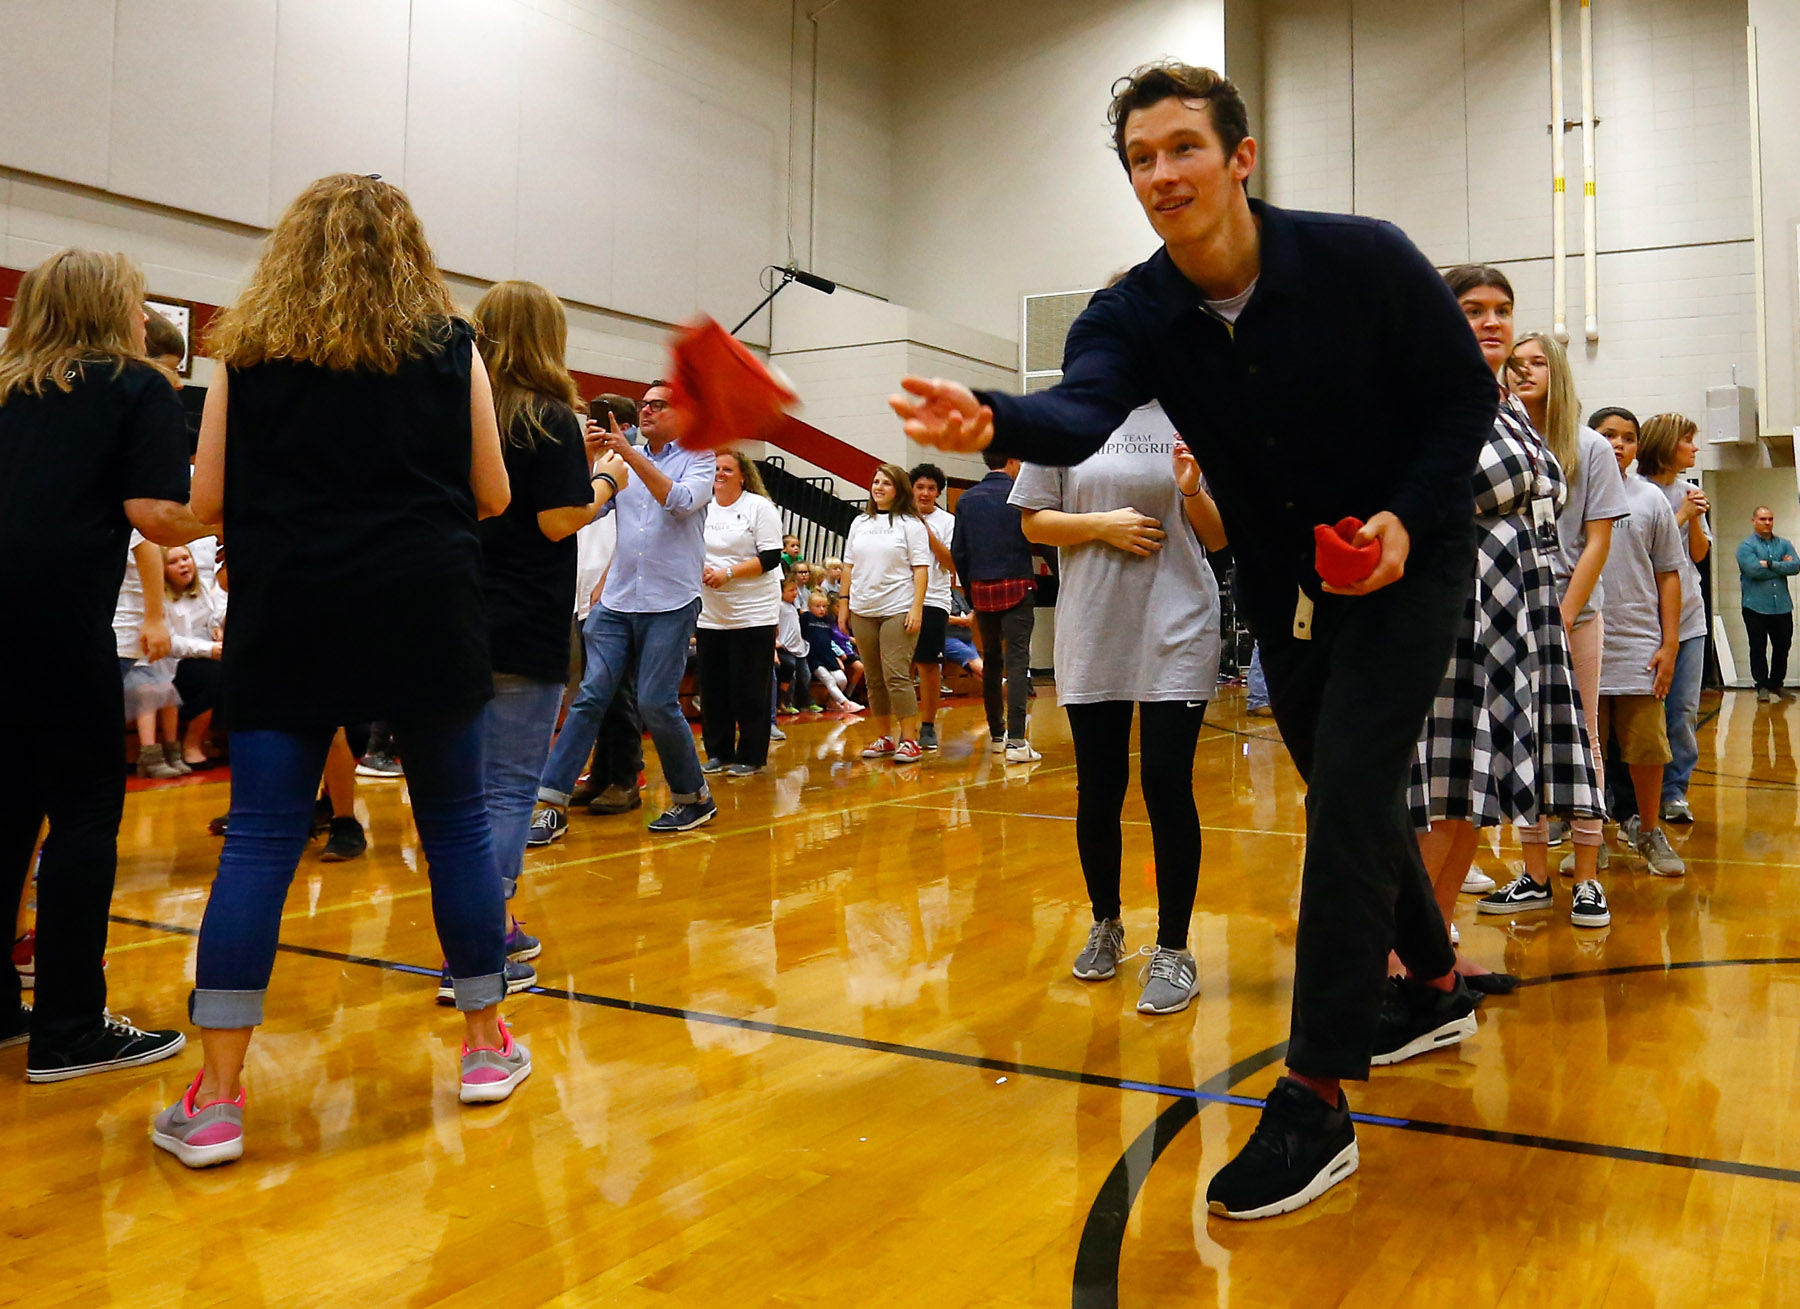 """Callum Turner from """"Fantastic Beasts: The Crimes of Grindelwald"""" celebrates Wizarding World Day at Parkside Middle School in Baileyton, AL.  (Photo by Butch Dill/Getty Images)"""